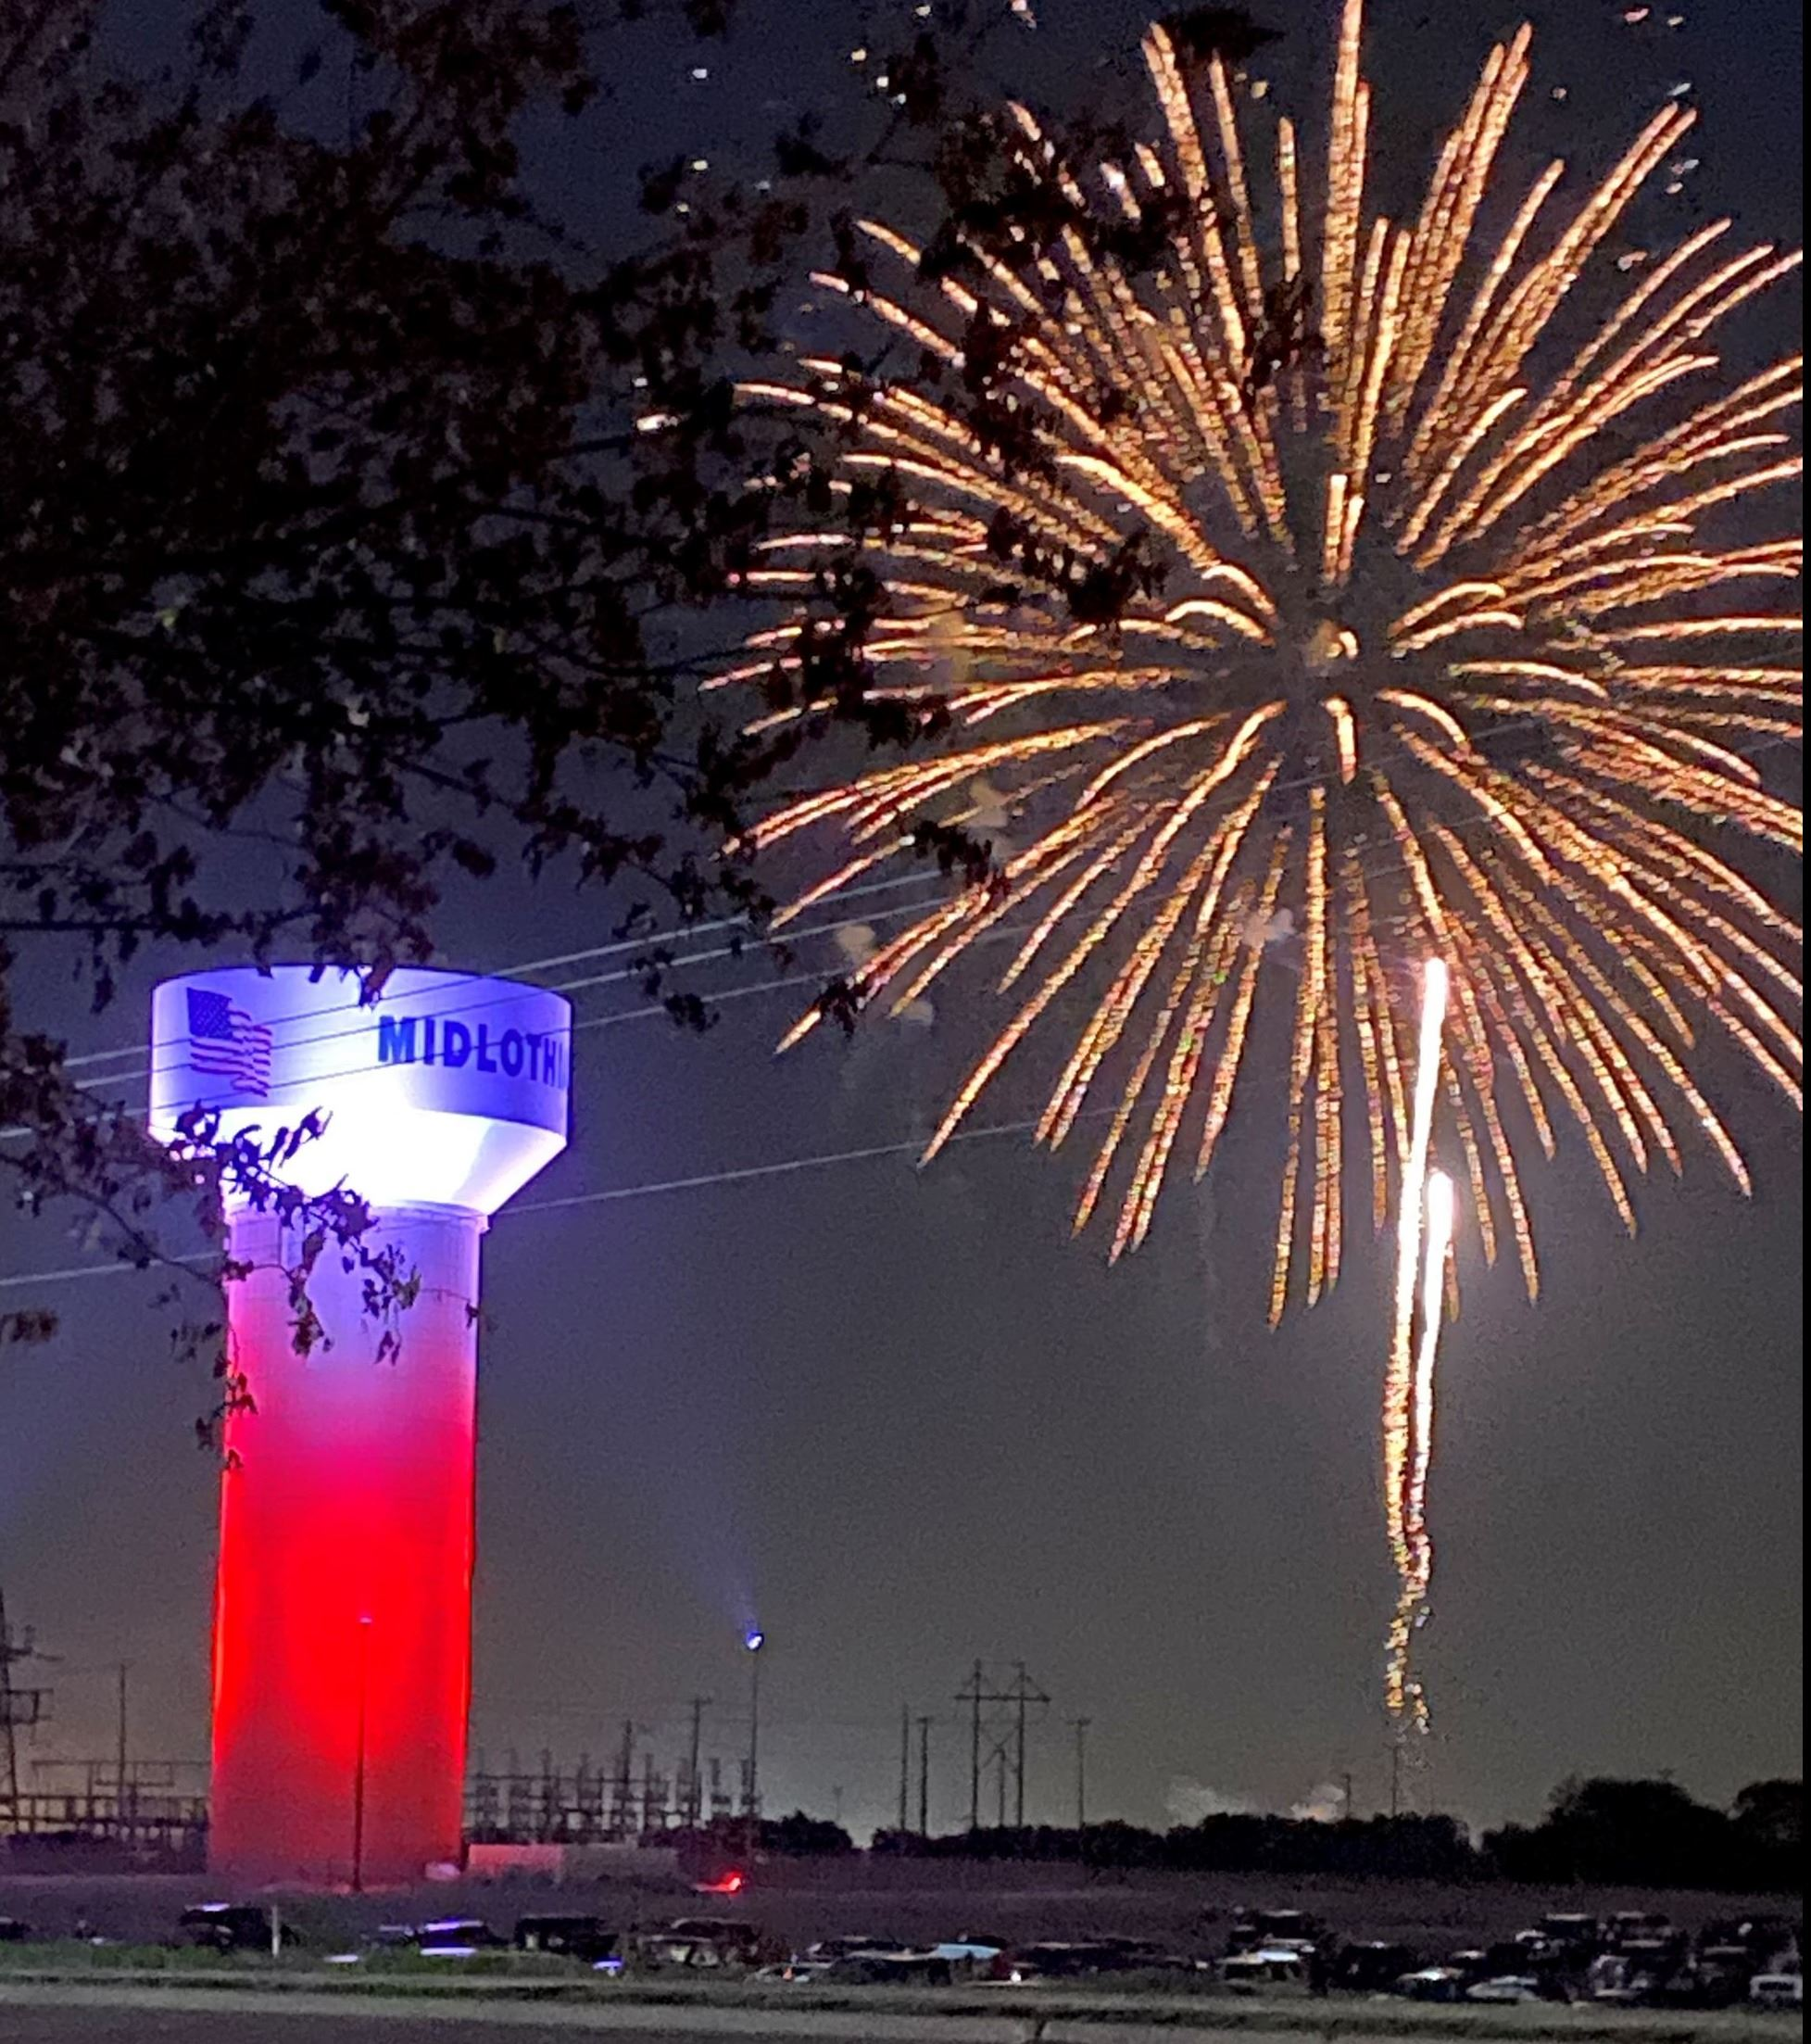 Water tower with red/blue lights and a large gold firework in the sky.